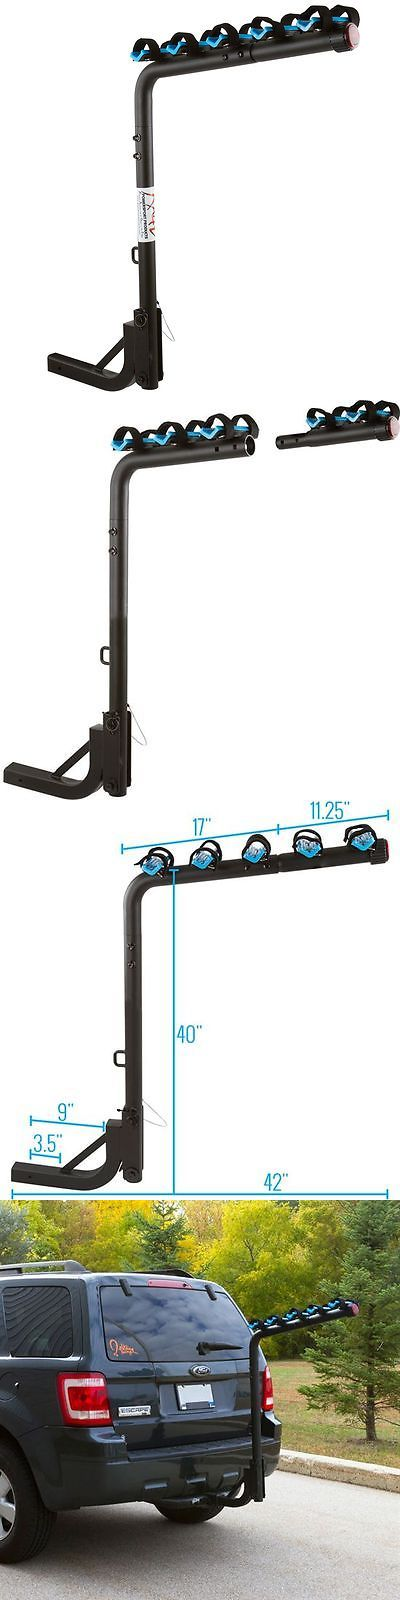 Car and Truck Racks 177849: 5-Bike Hitch Mount Rack With 2-Inch Receiver Tilting Option -> BUY IT NOW ONLY: $109.98 on eBay!